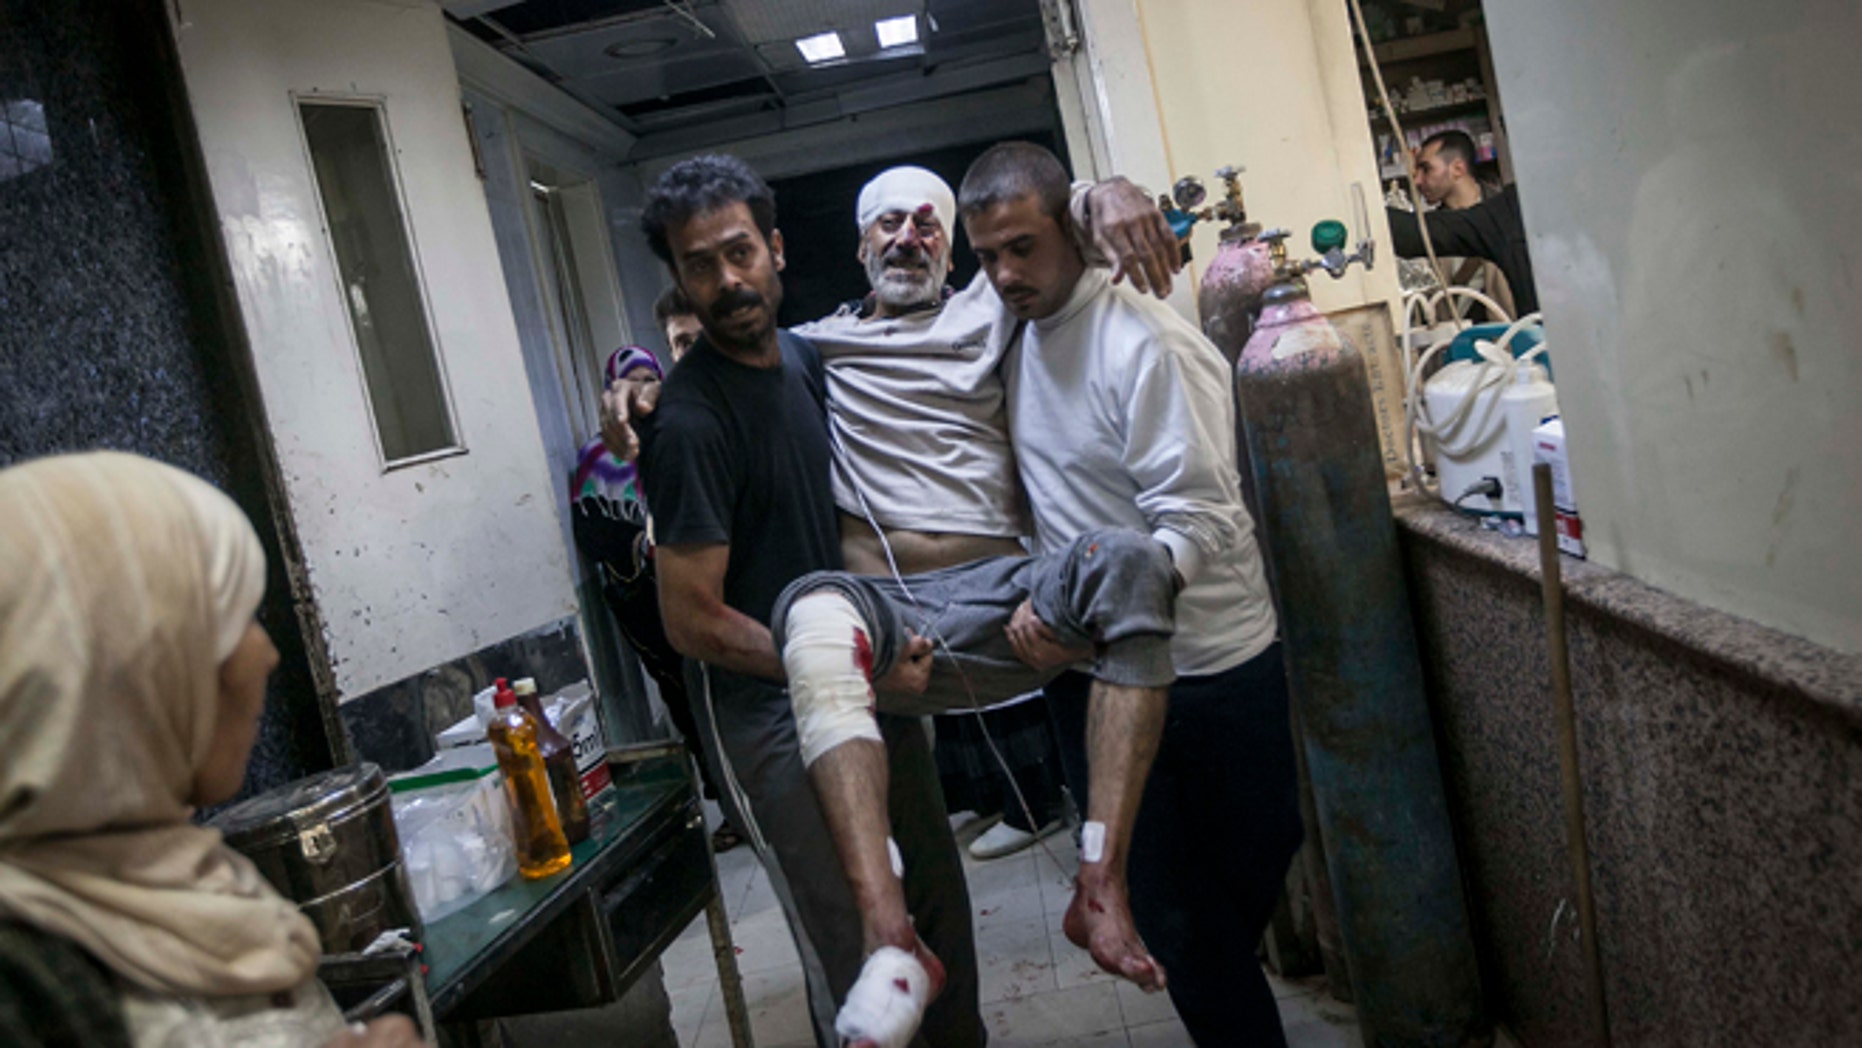 Nov. 13, 2012: A Syrian man is carried in the arms of his relatives at a hospital after he was injured by a mortar shell explosion in the Bab Al-Nayrab neighborhood of Aleppo, Syria.